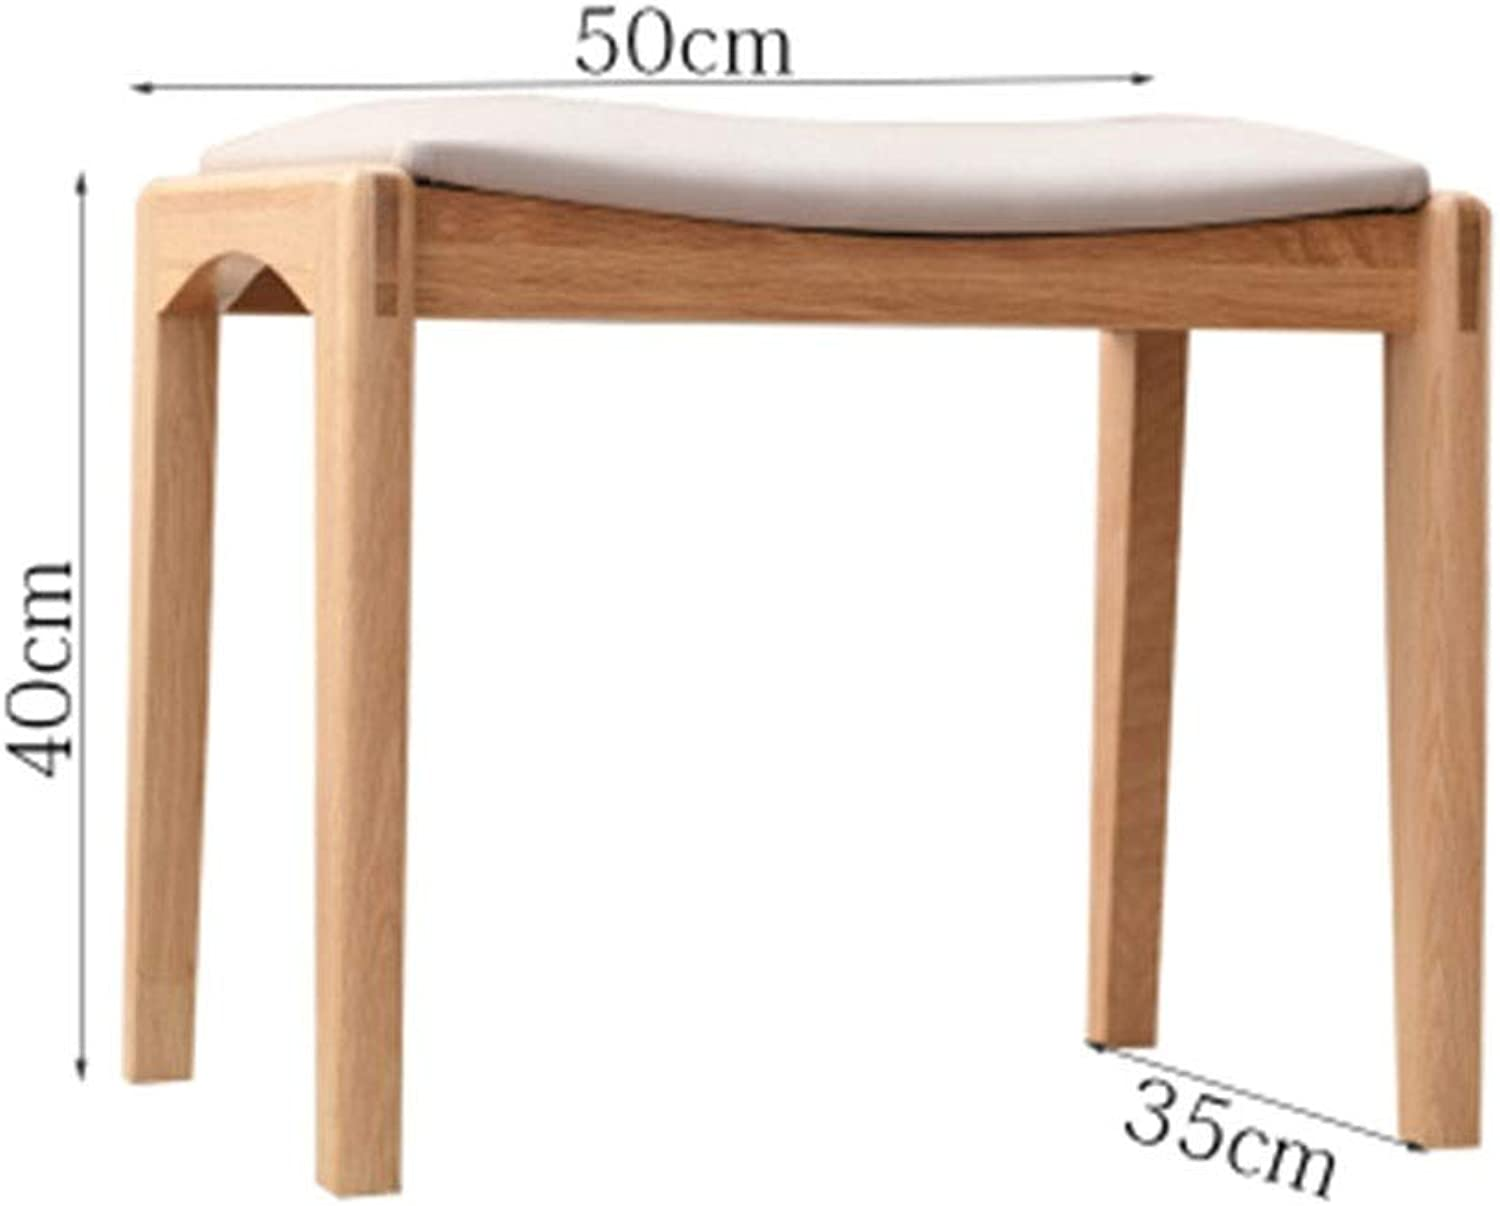 B.YDCM Wooden Bench- Solid Wood Stool Fabric Makeup Stool Dressing Stool Square Stool Creative Bench Computer Bench - Wood Bench (color   E)